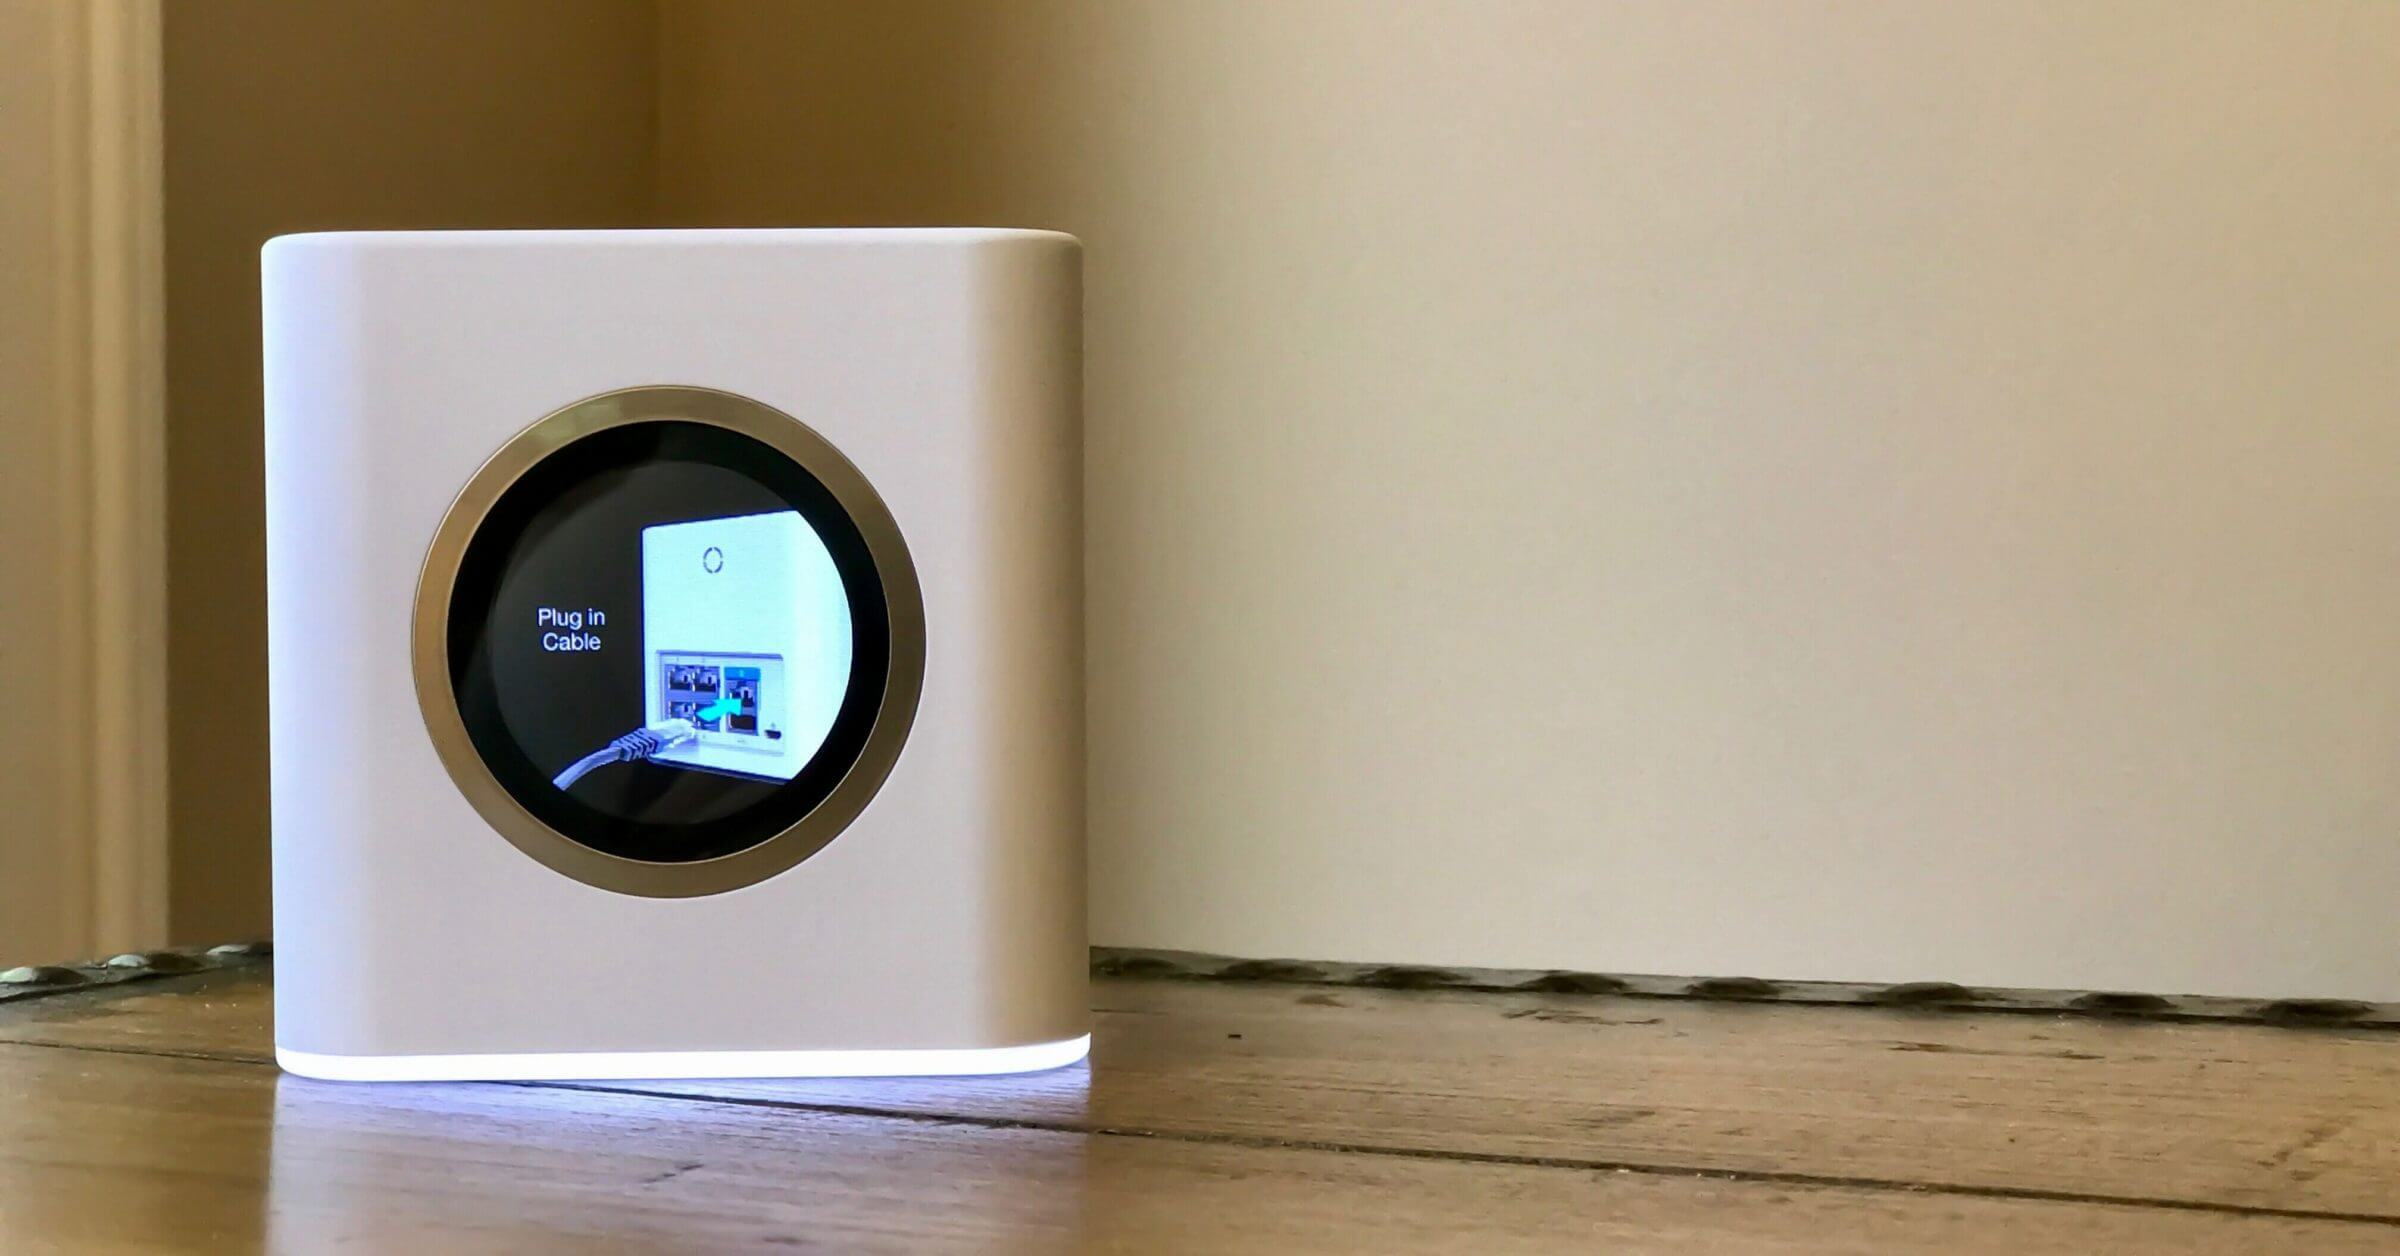 Amplifi Hd Review Wireless Mesh Network For Better Wifi Poin Ethernet Wall Jack Wiring Error Message On B When You Connect The Cable To Wrong Port